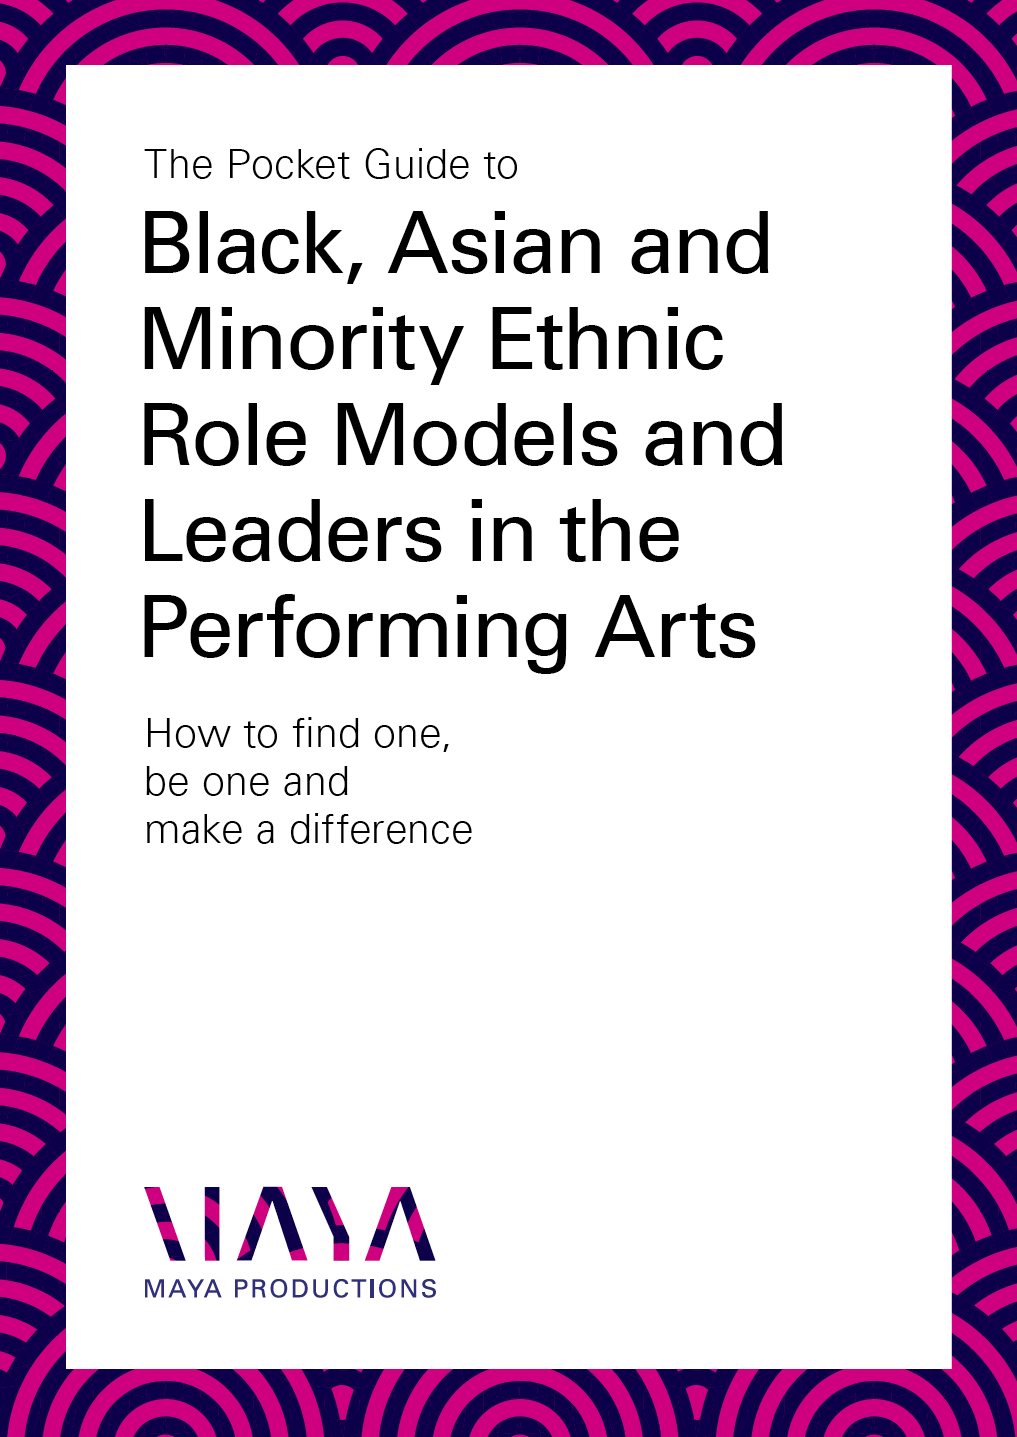 Guide to Black, Asian and Minority Ethnic Role Models and Leaders in the Performing Arts